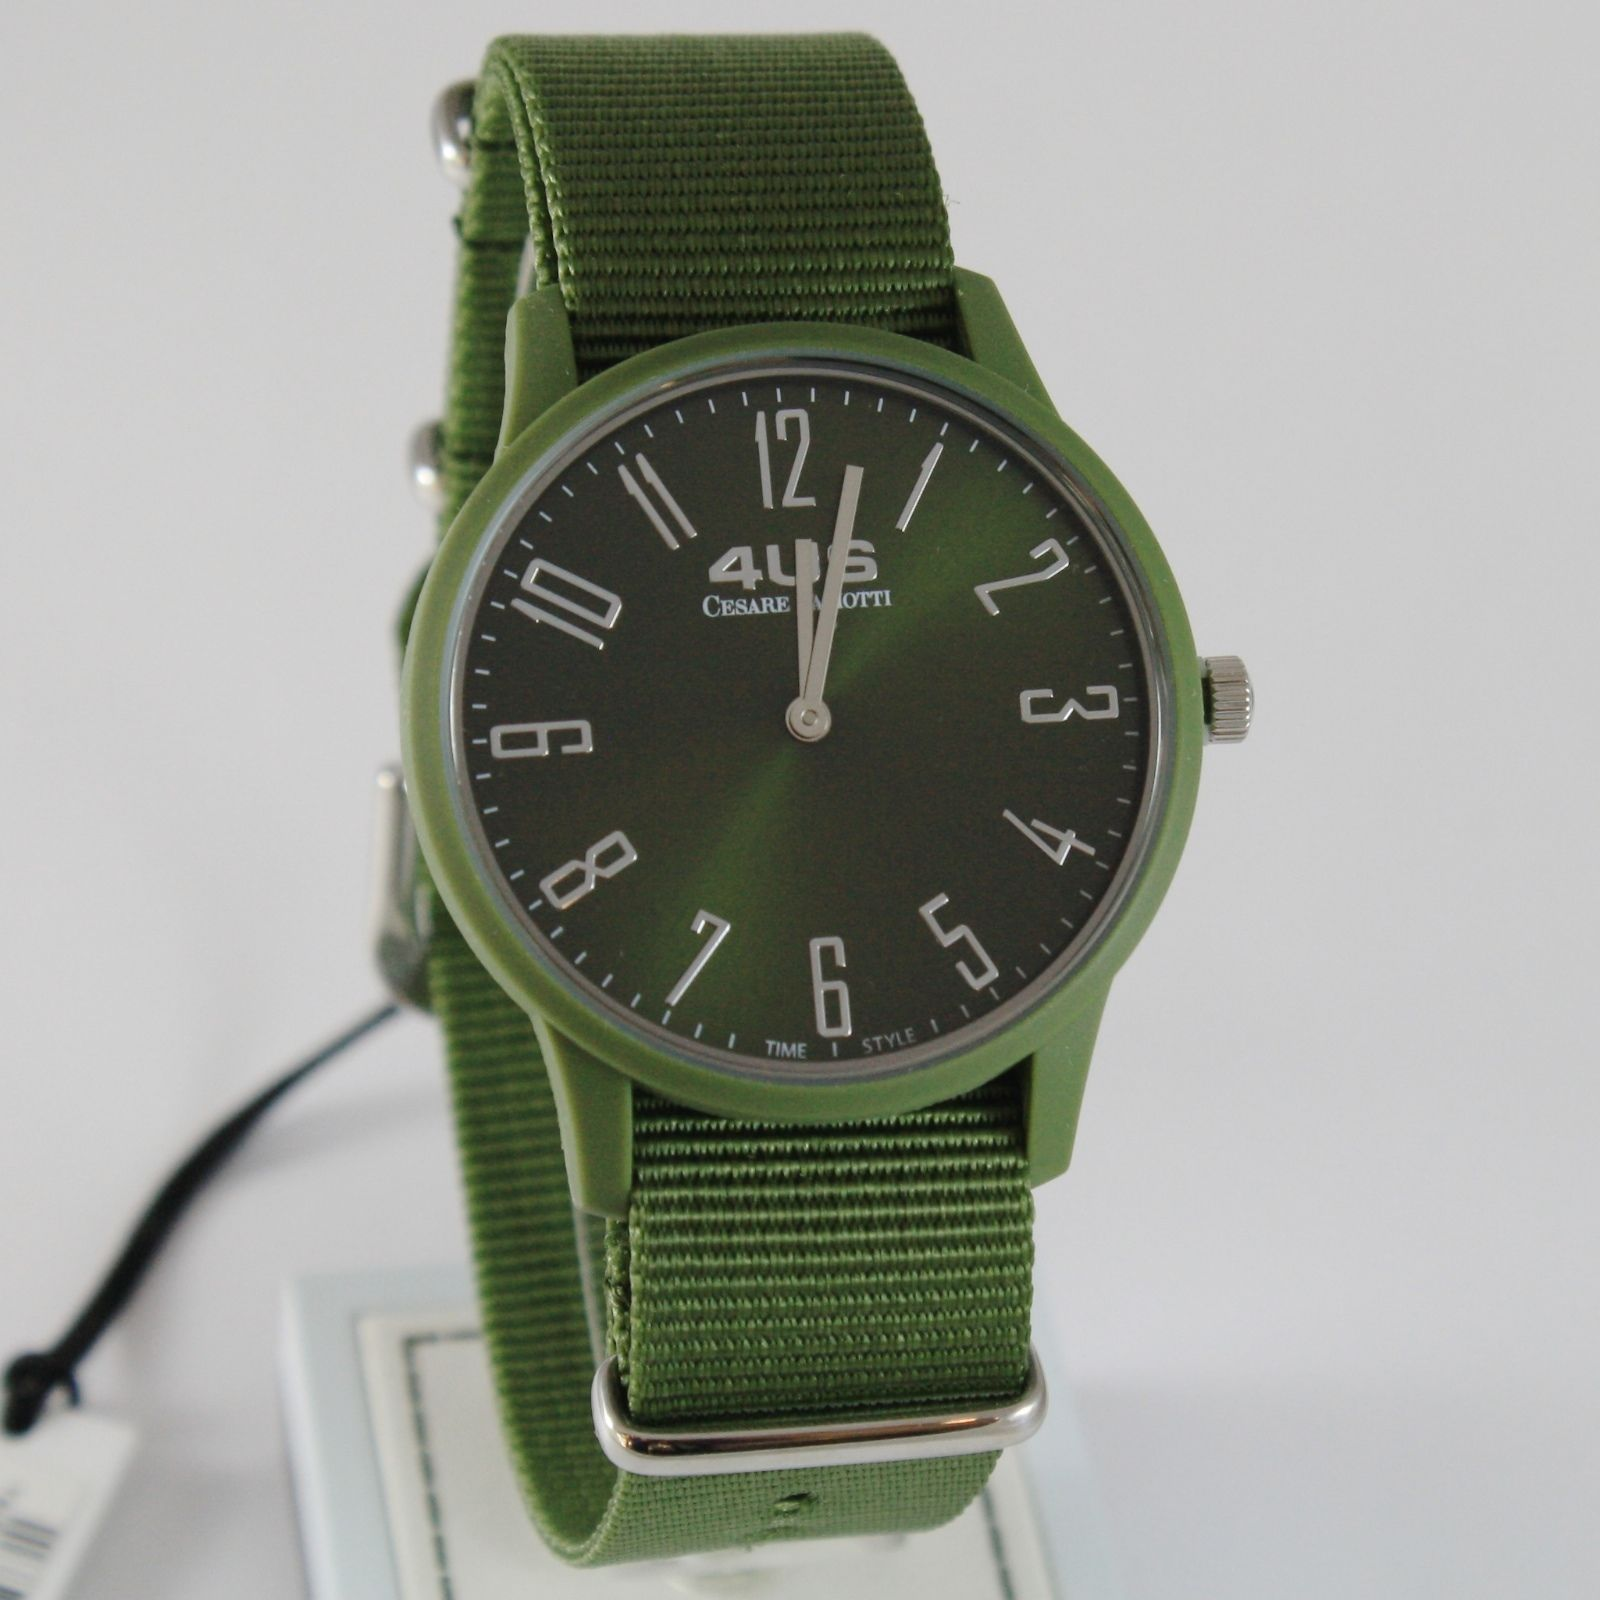 CESARE PACIOTTI 4US WATCH QUARTZ MIYOTA MOVEMENT 40 MM CASE, GREEN FABRIC BAND